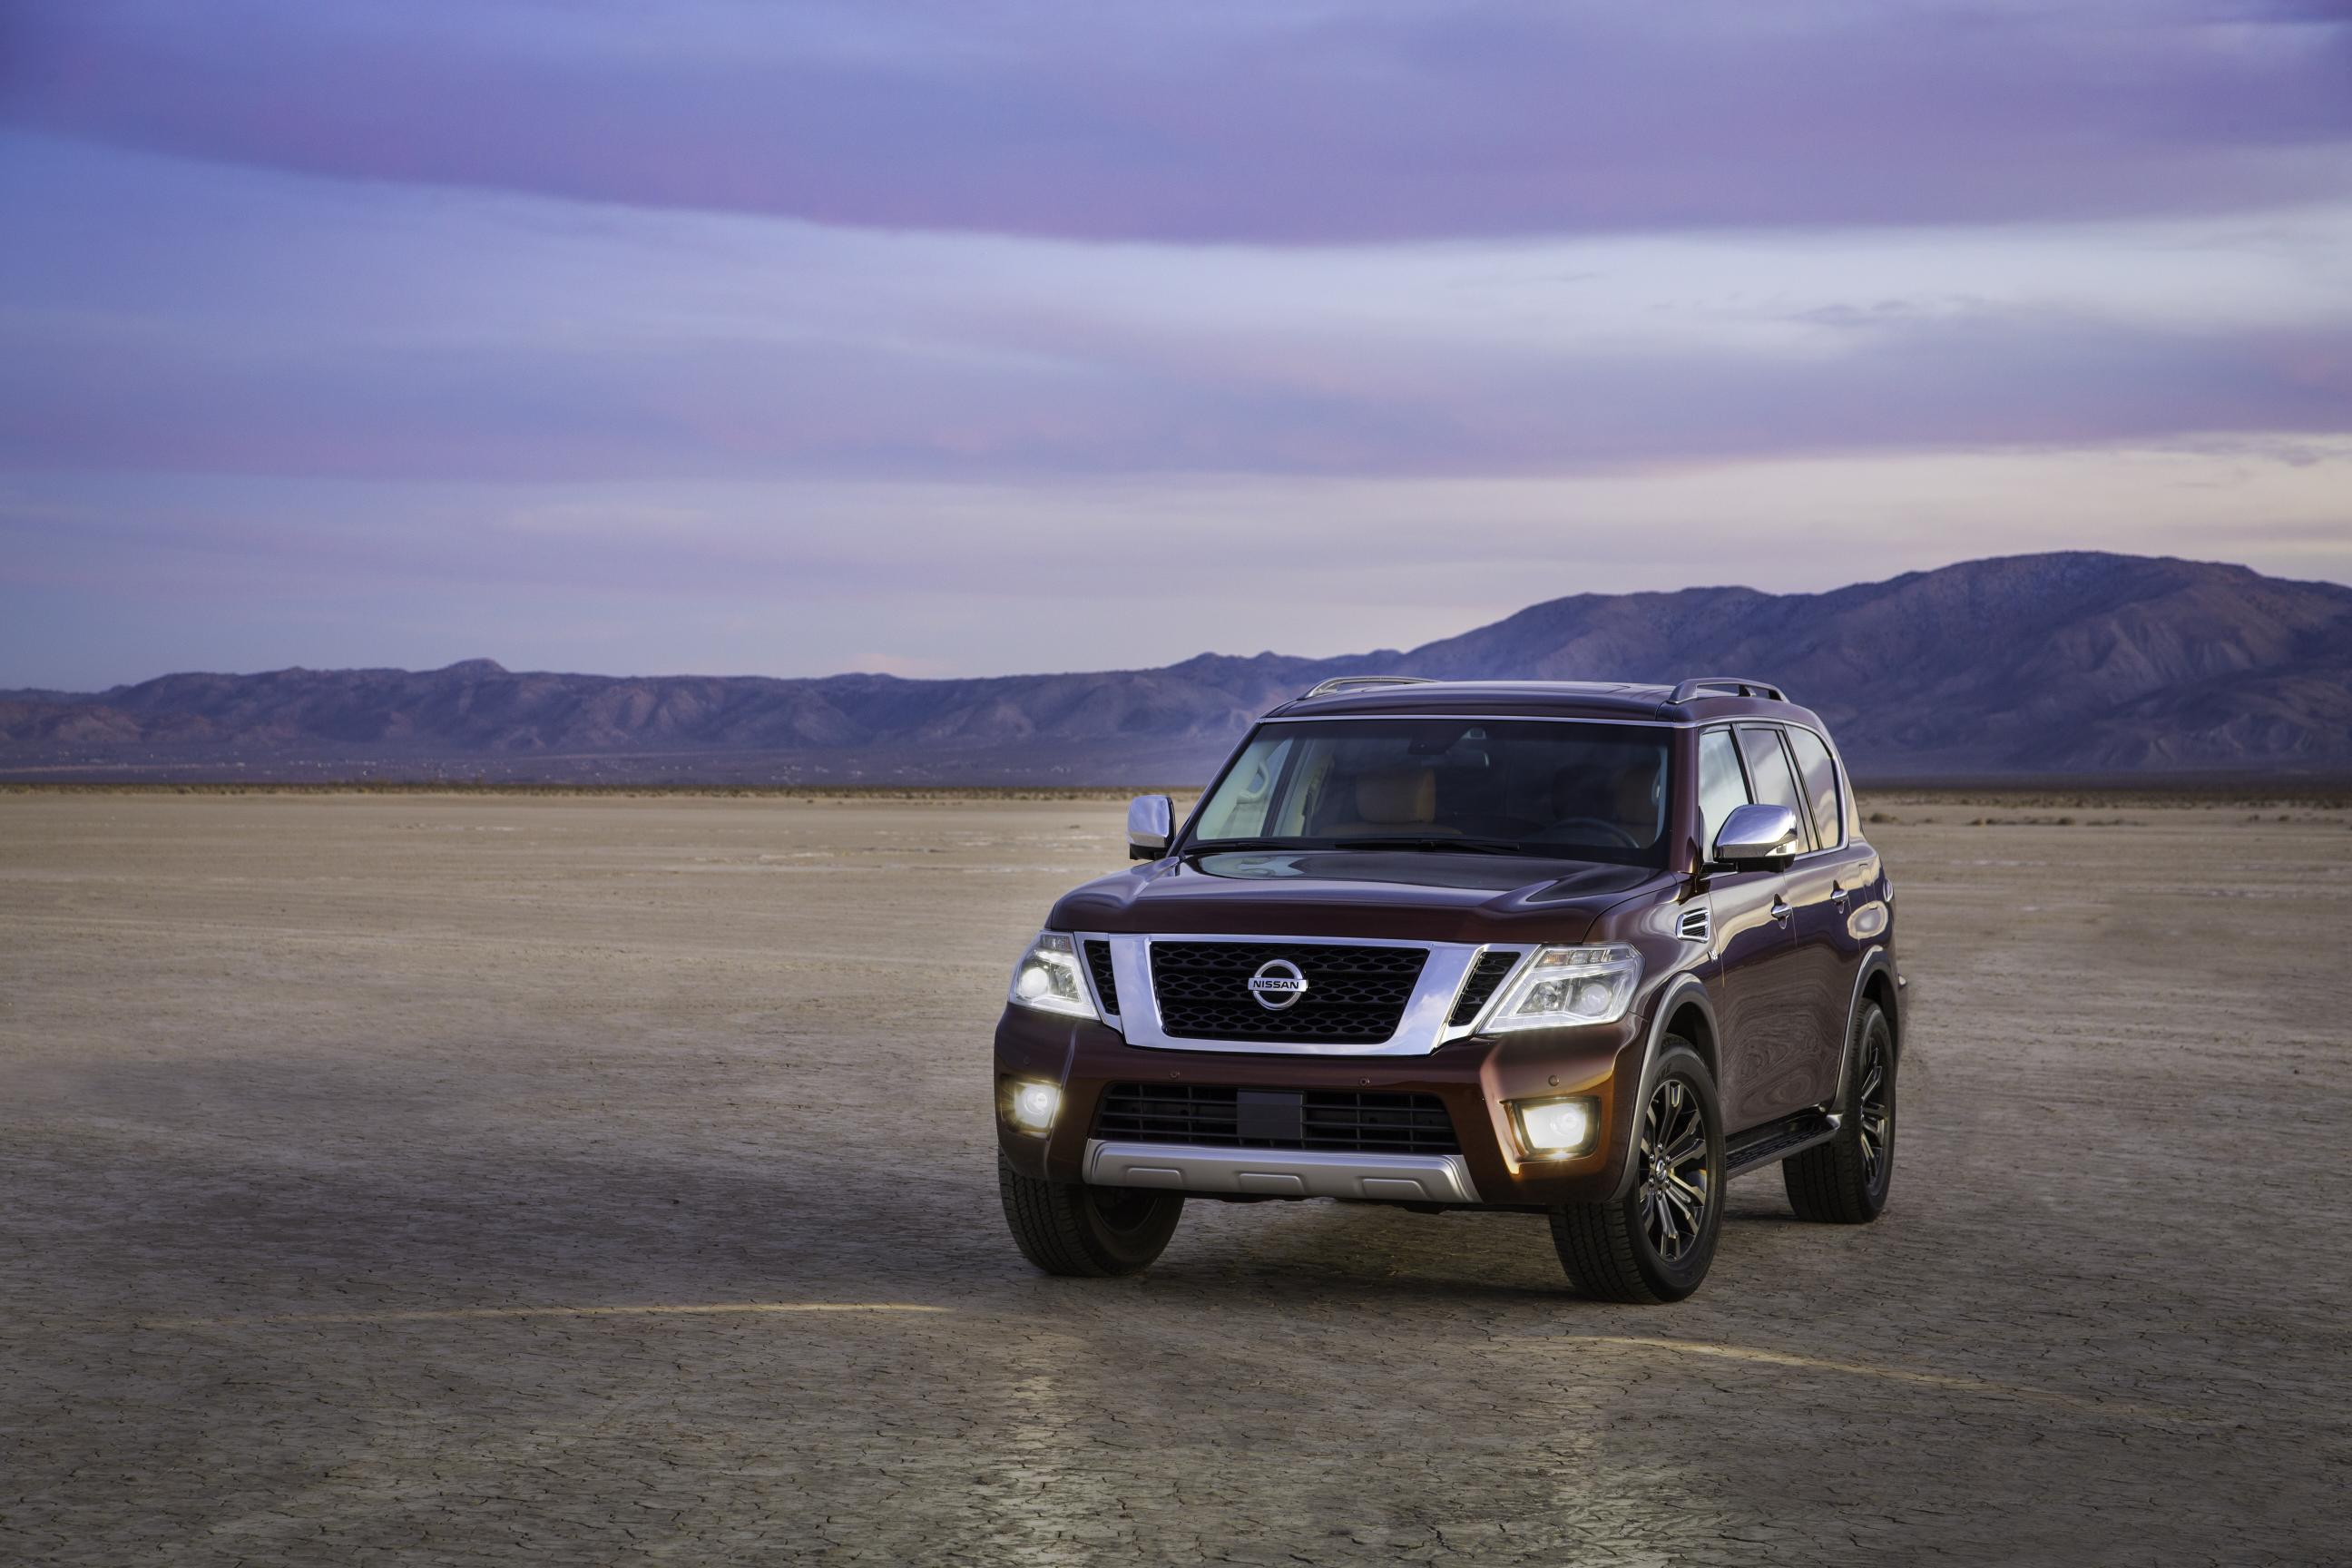 2017 Nissan Armada Configurations >> ALL-NEW 2017 NISSAN ARMADA - myAutoWorld.com